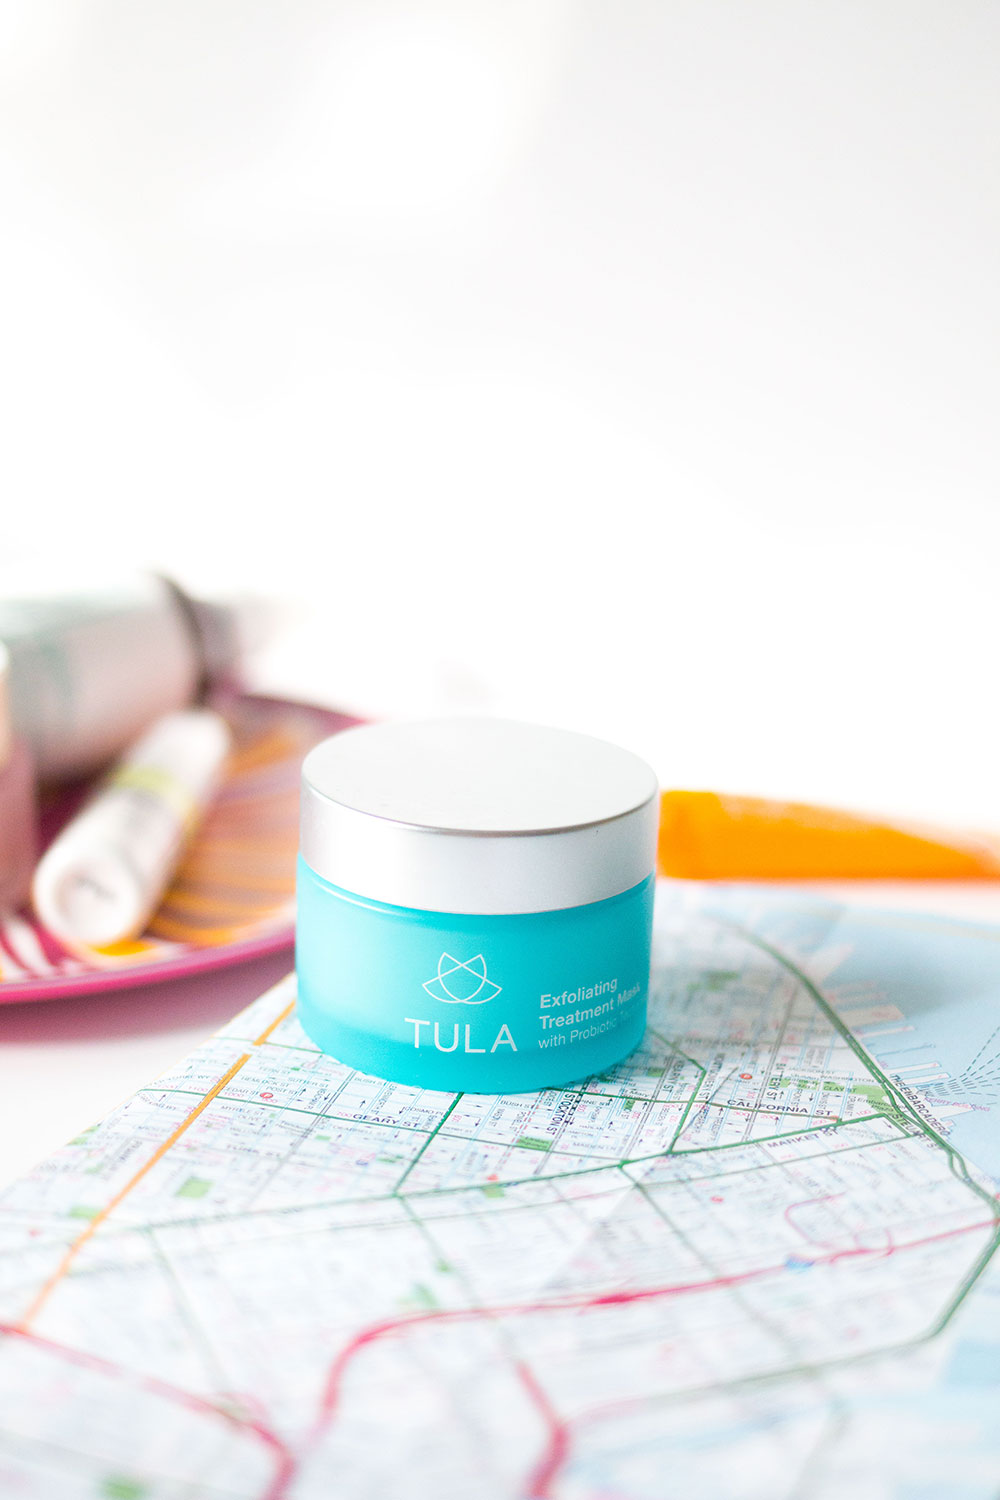 TULA Exfoliating Treatment Mask Review // Hello Rigby Seattle Beauty Blog